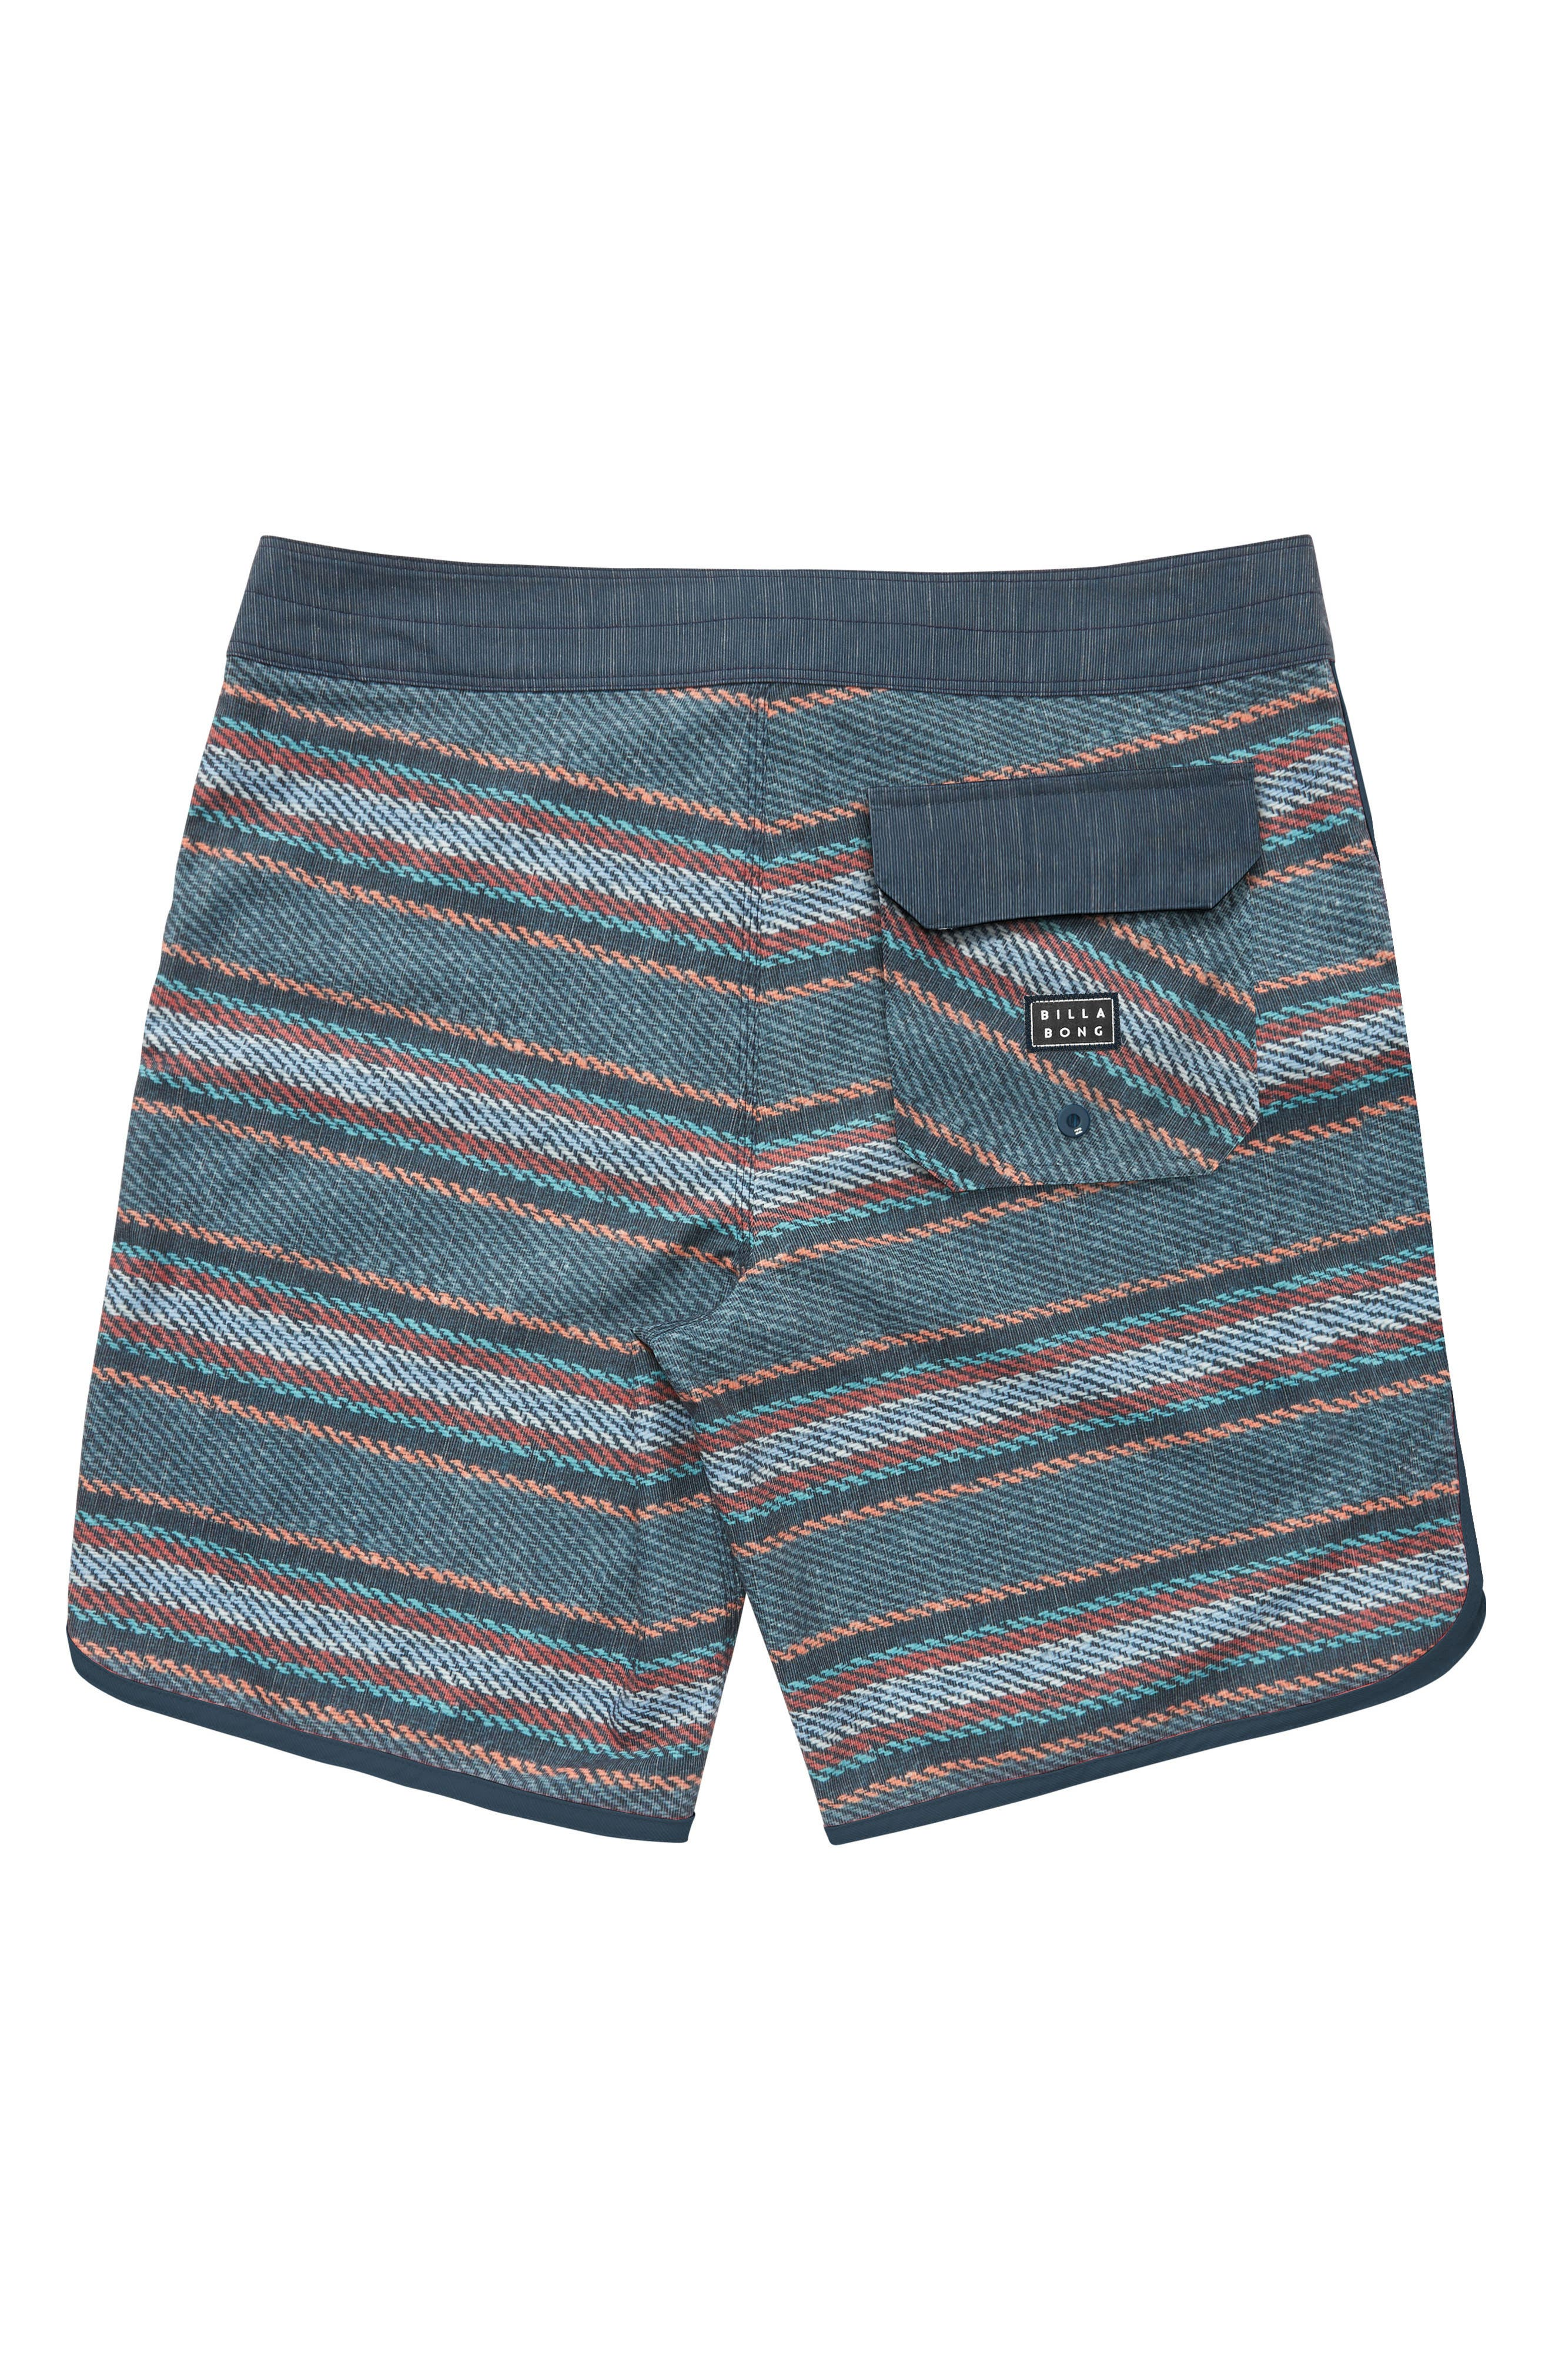 73 LT Lineup Swim Trunks,                             Alternate thumbnail 4, color,